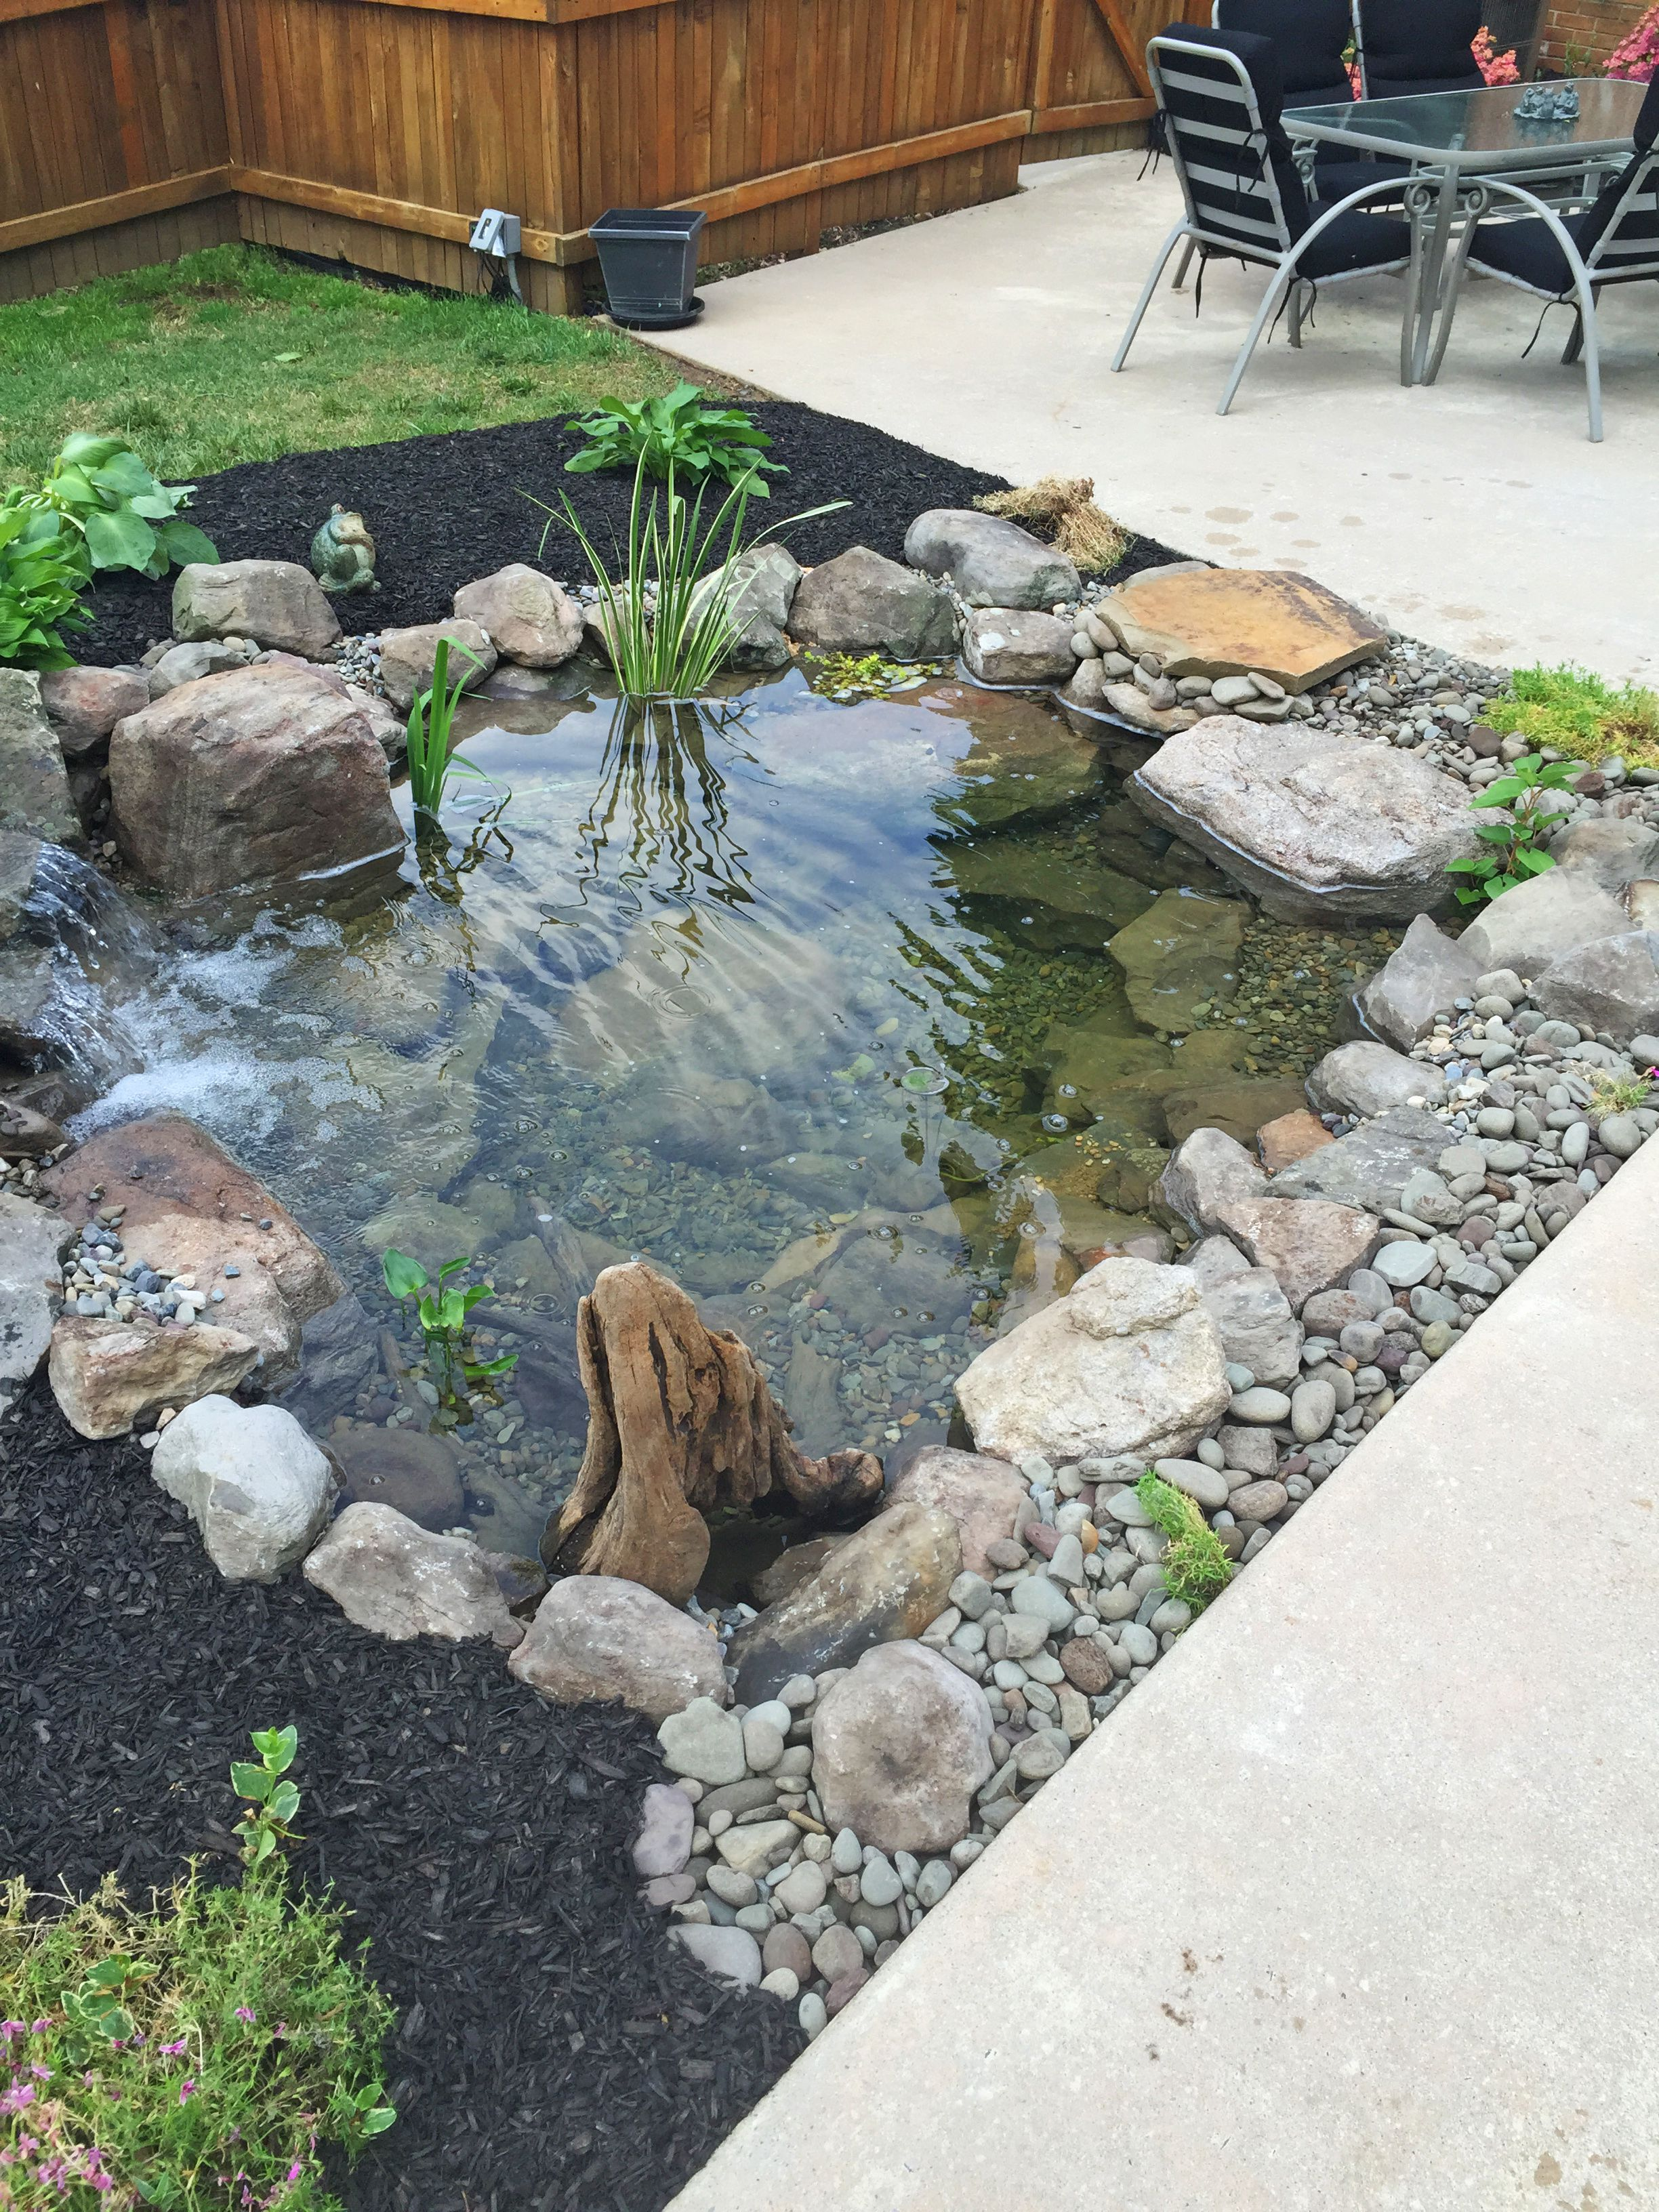 Backyard fish pond waterfall koi water garden waterscapes for Pond water features